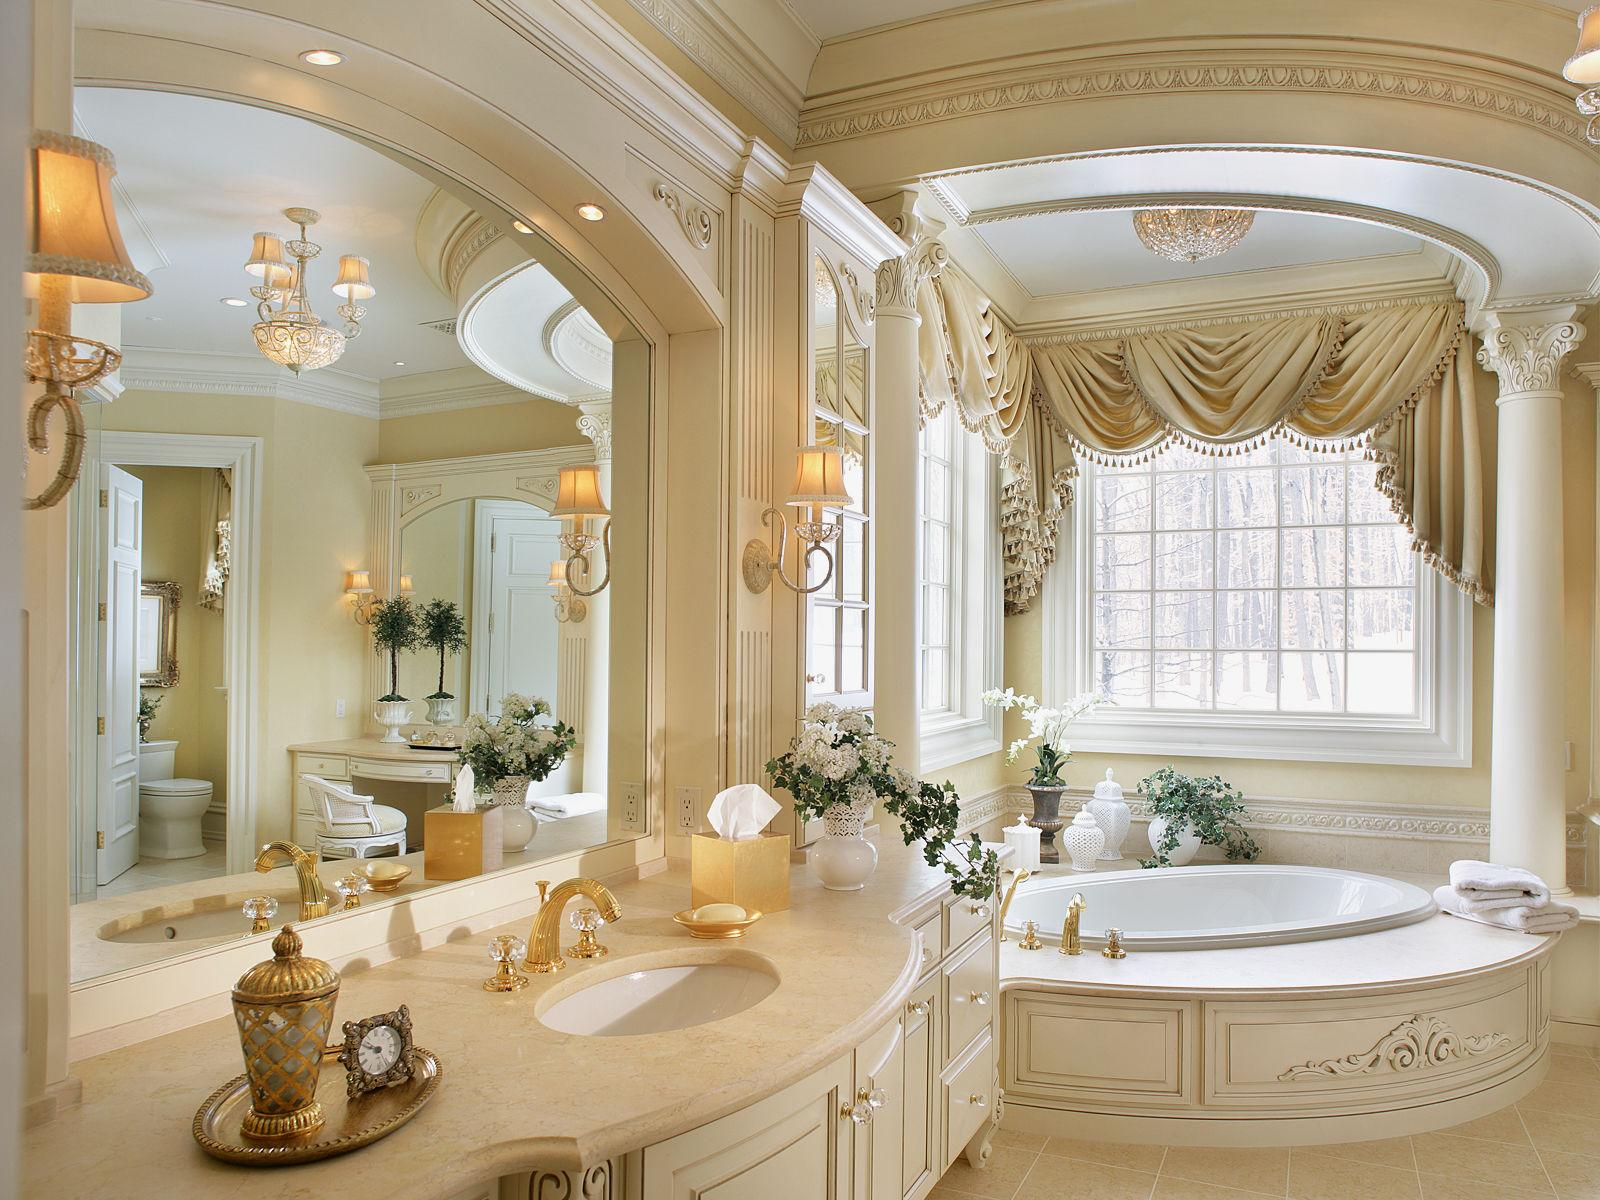 Bathroom design with creamy tones and stucco trimming